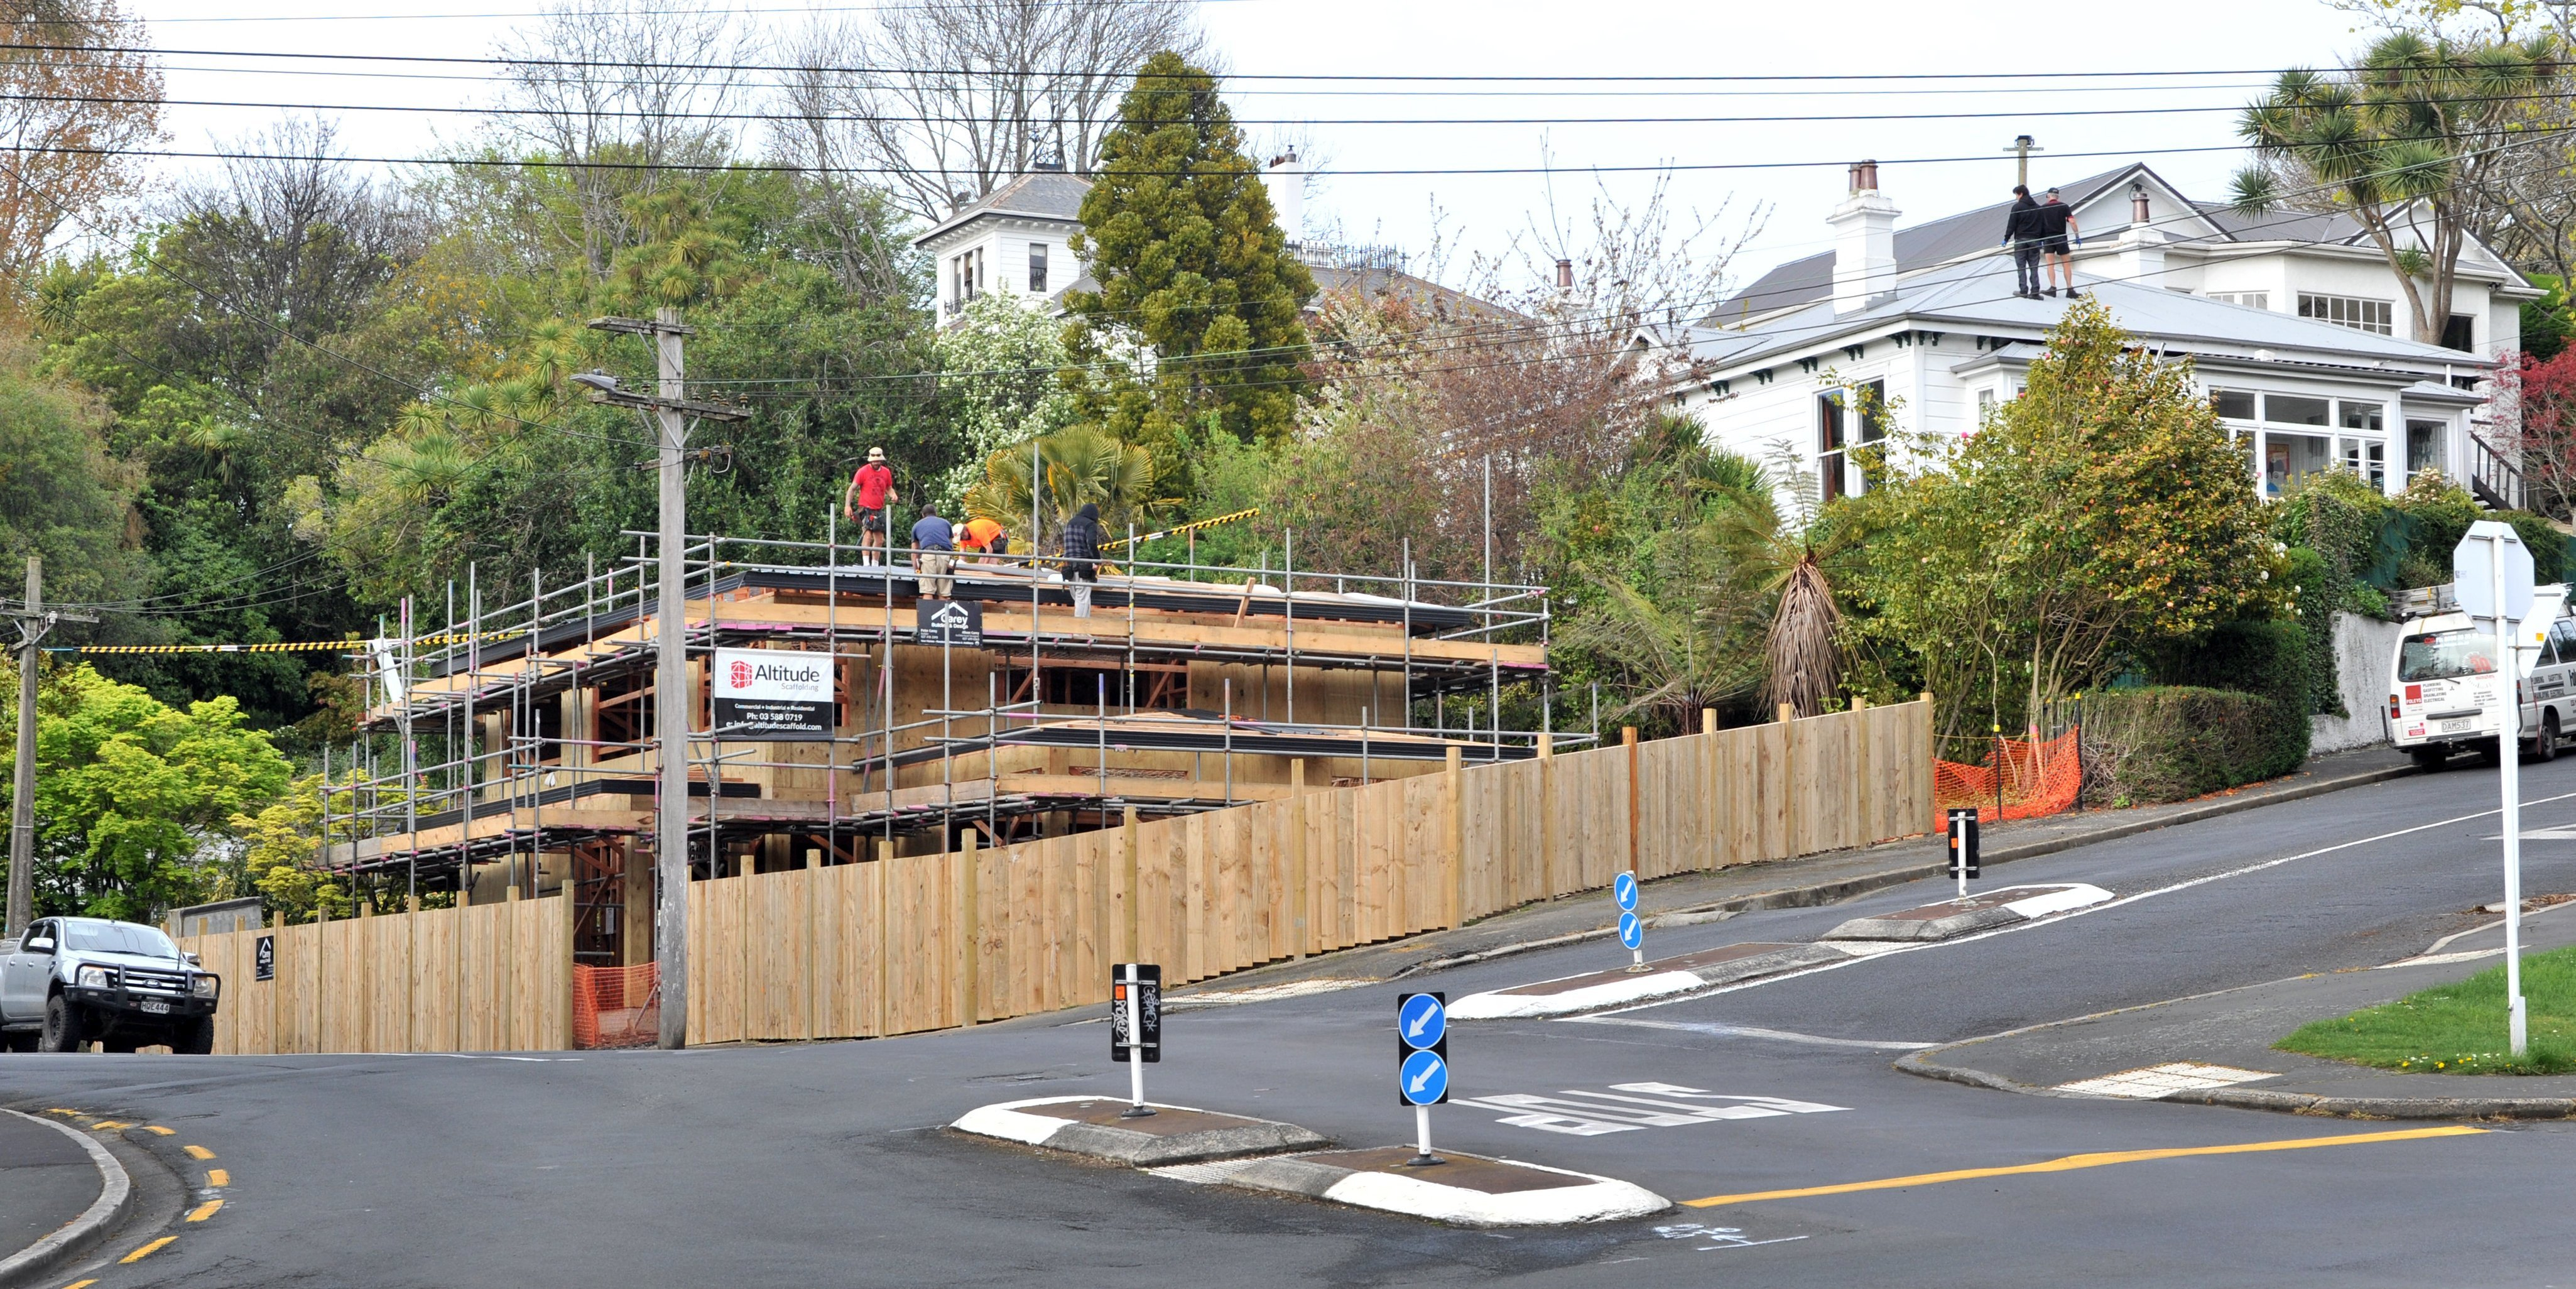 Builders work on a new home on the corner of Meadow St and Queens Dr, in Mornington, last week....